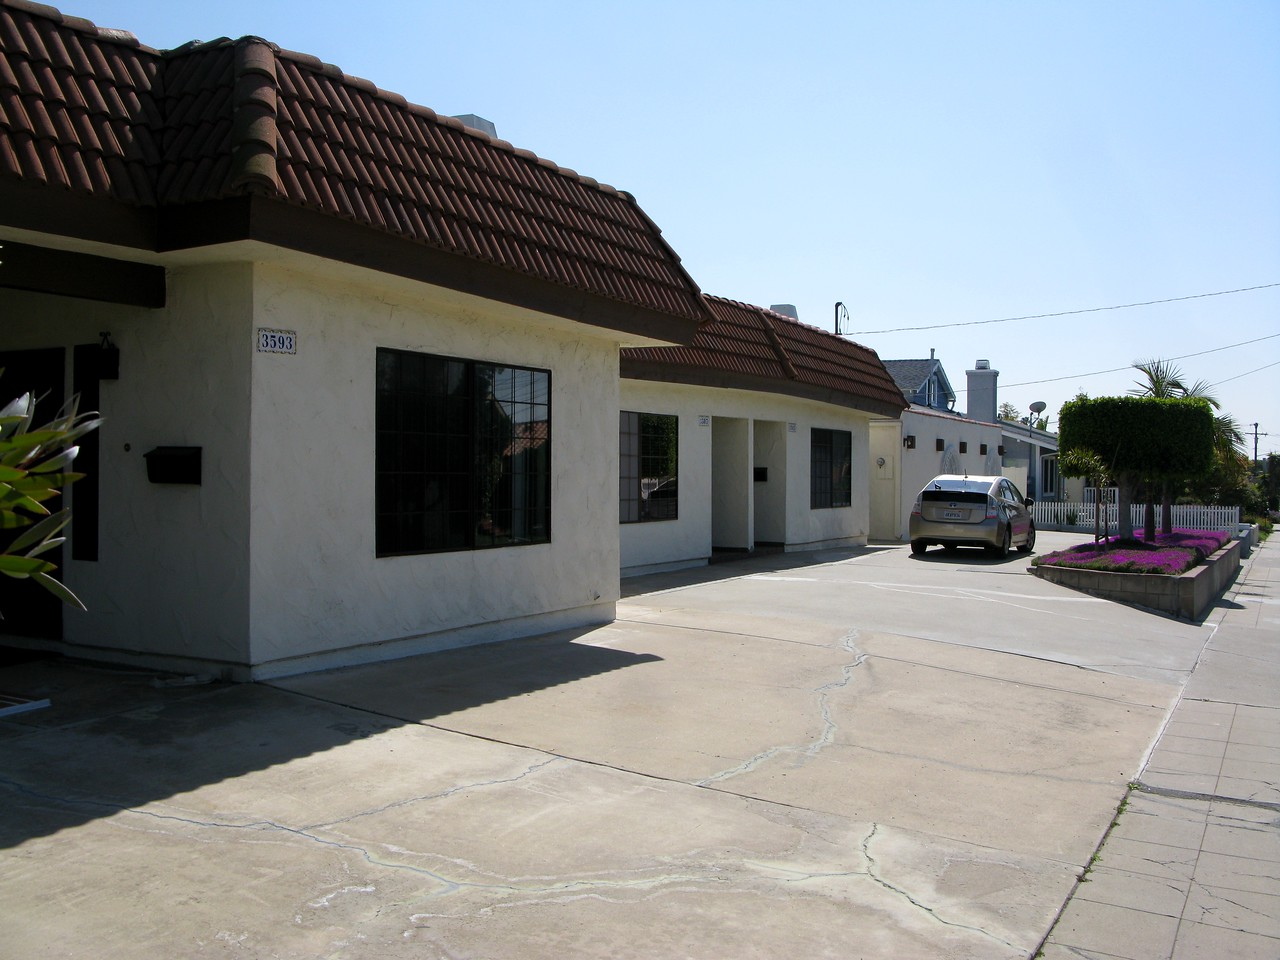 An example of structures that replaced houses destroyed after Flight 182's impact with the neighborhood.<br /> <br /> Even today, it has been reported that residents of this North Park neighborhood still find pieces of burnt metal from the accident on their property.